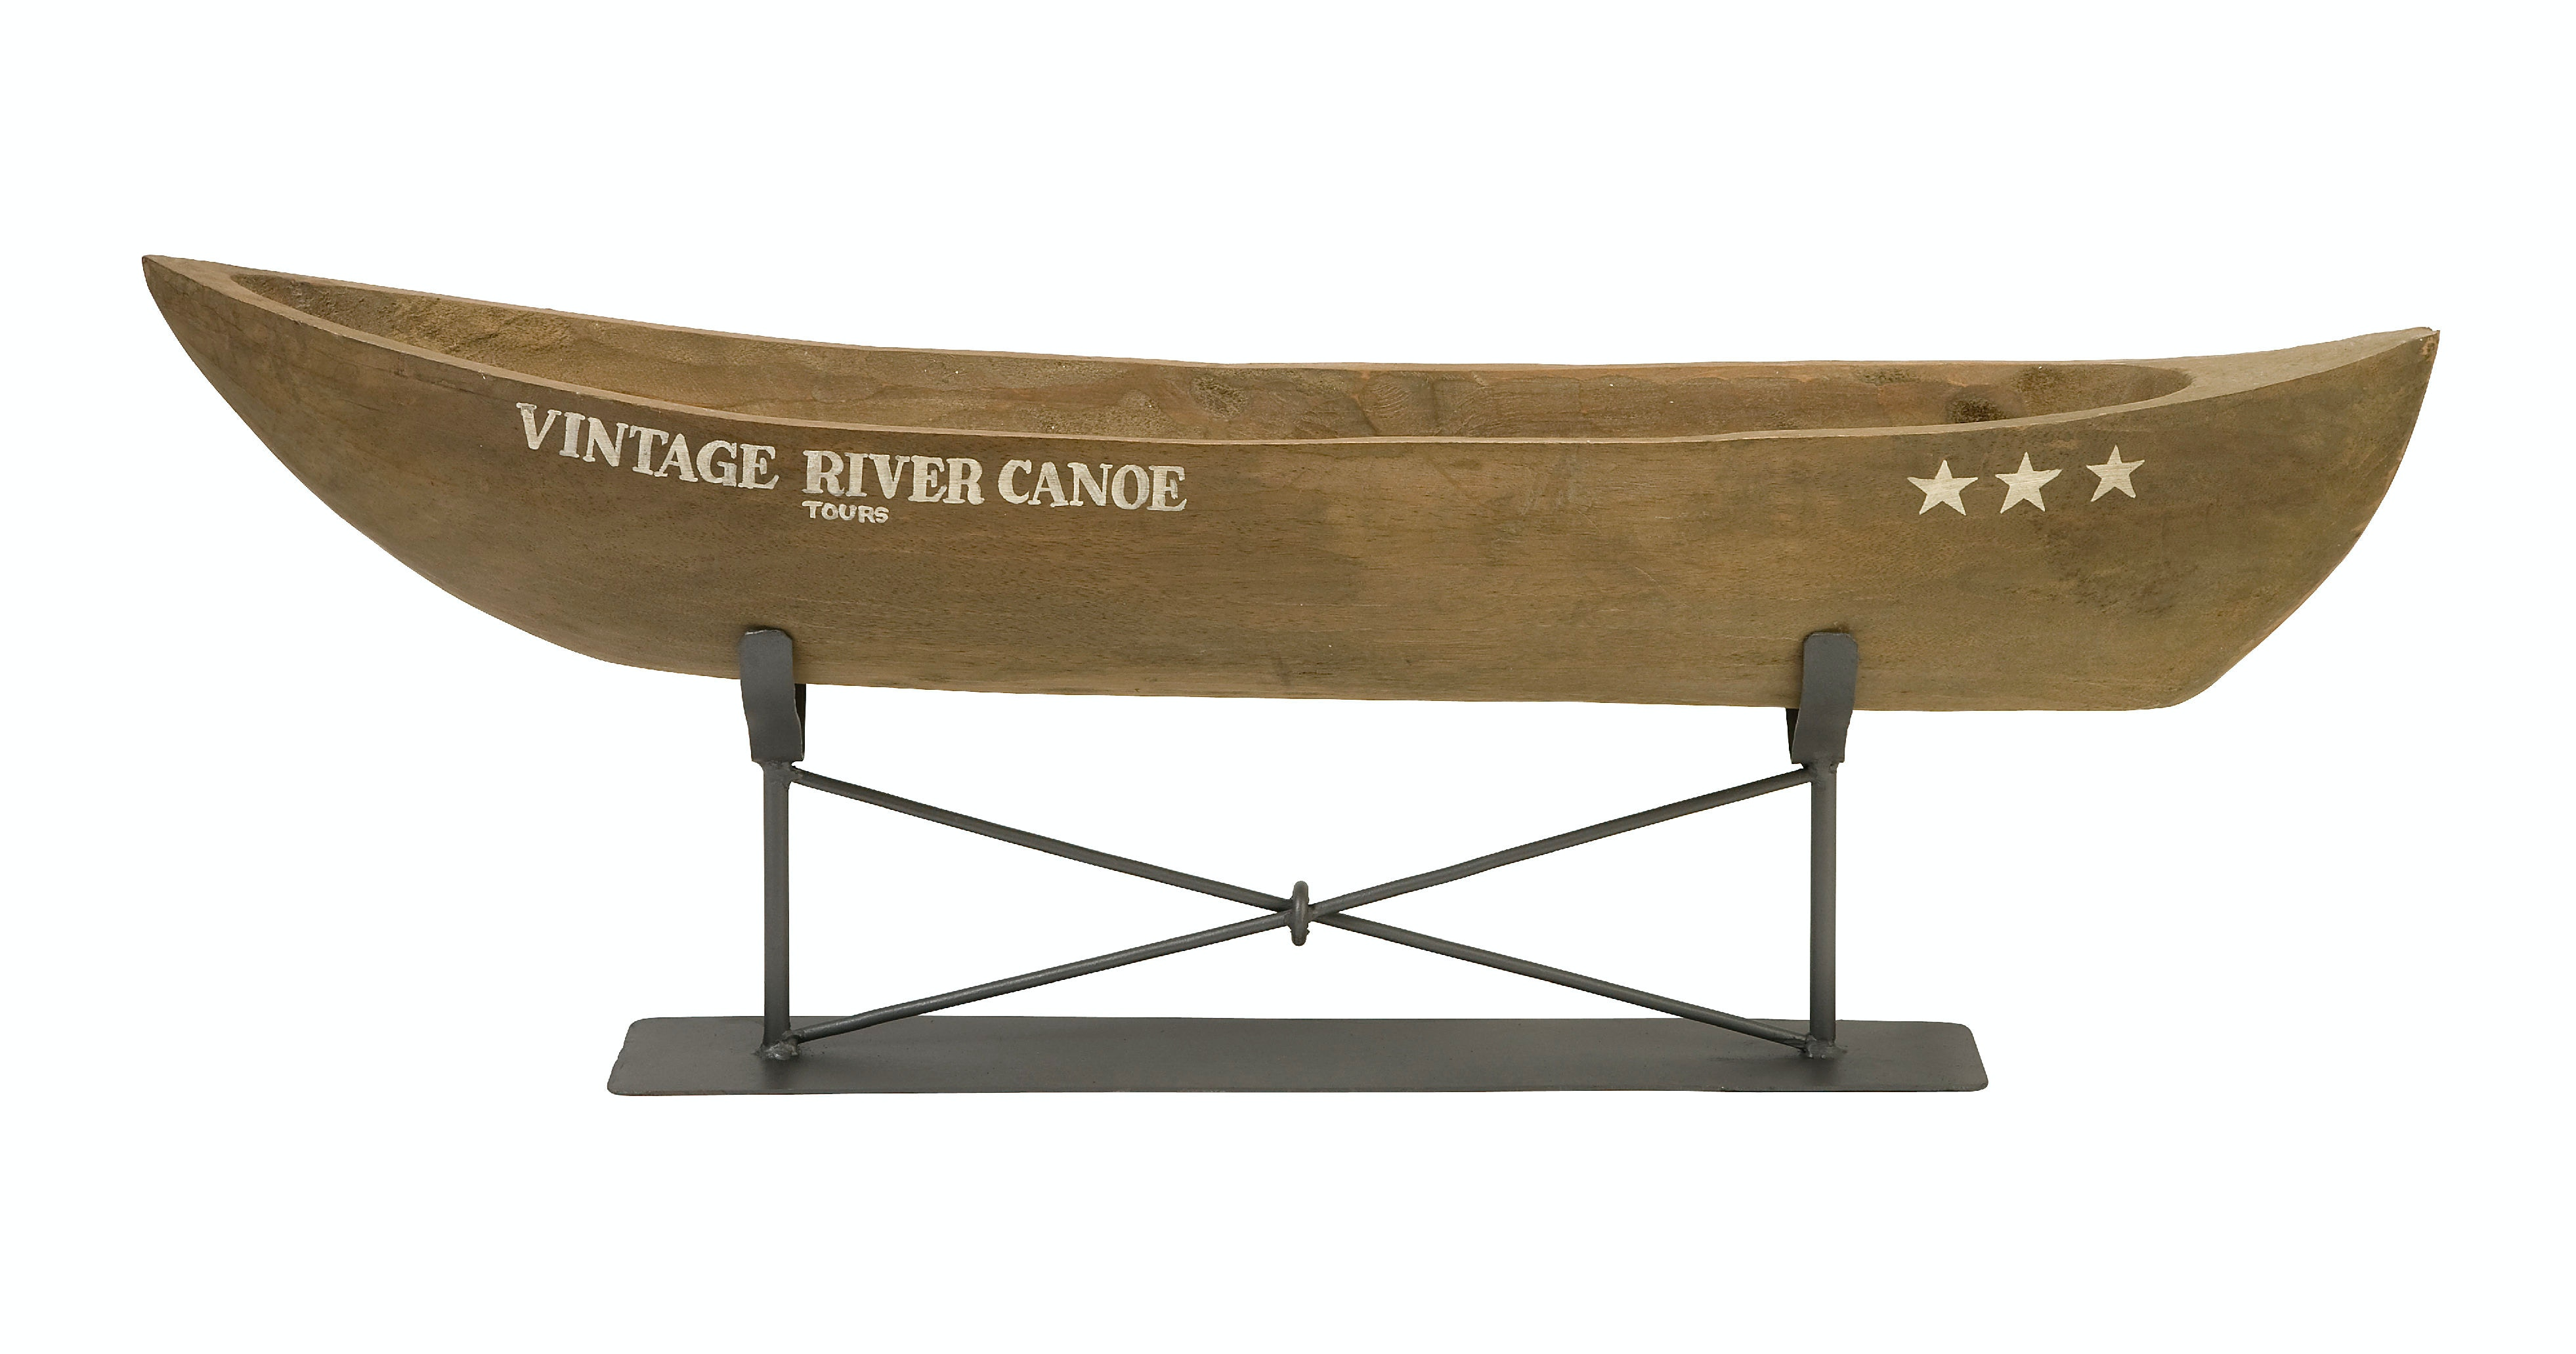 Vintage looks furniture White Gold Imax Corporation Accessories Vintage River Canoe On Metal Stand 84310 At Indian River Furniture Trixieroqueme Imax Corporation Accessories Vintage River Canoe On Metal Stand